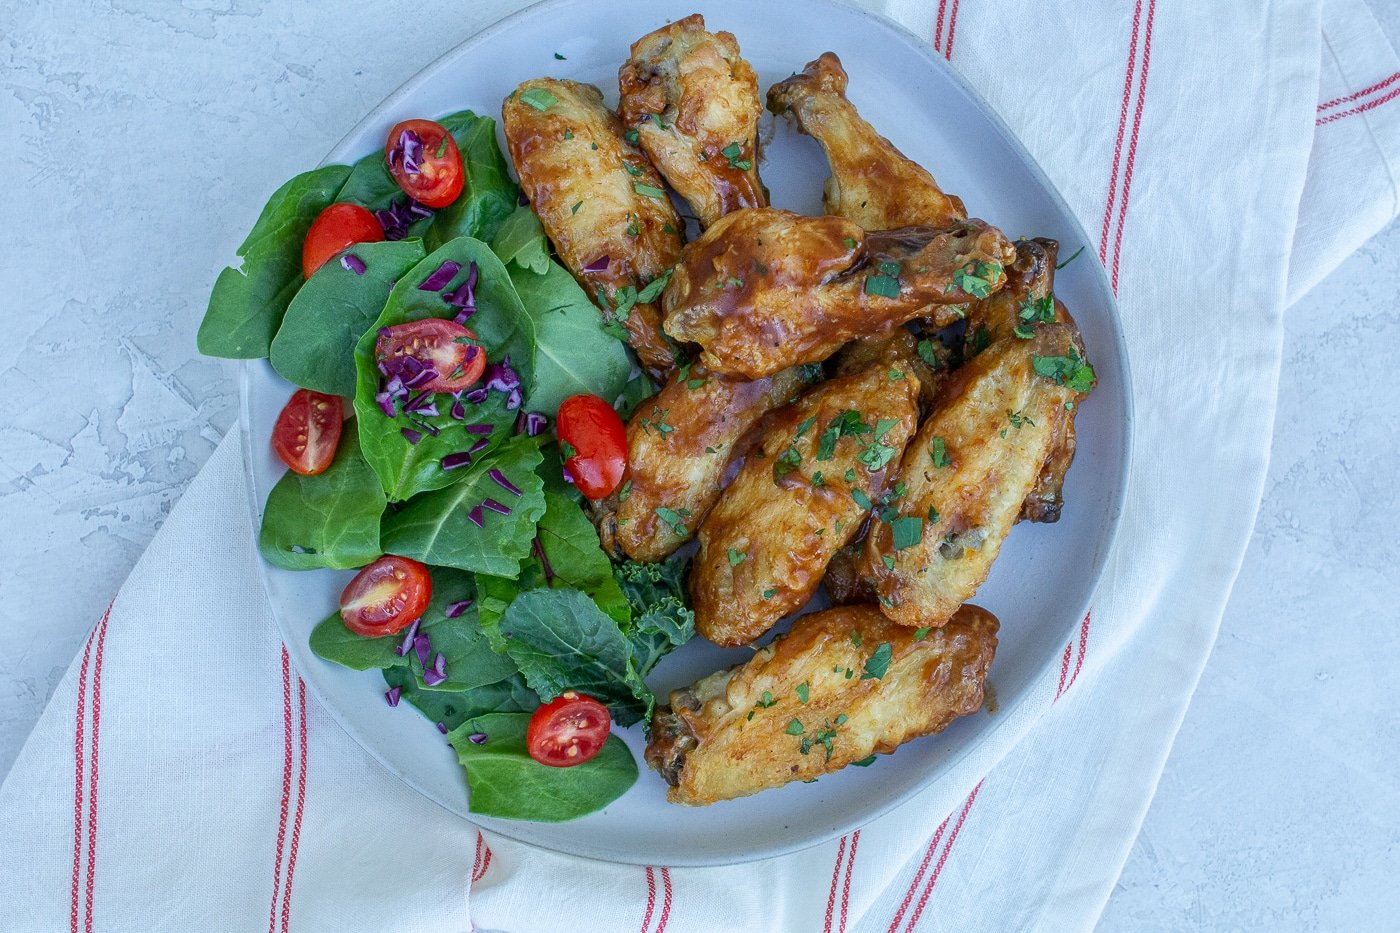 A pile of glazed chicken wing pieces aside a green salad with small red tomatoes and bits of red onion on a white plate